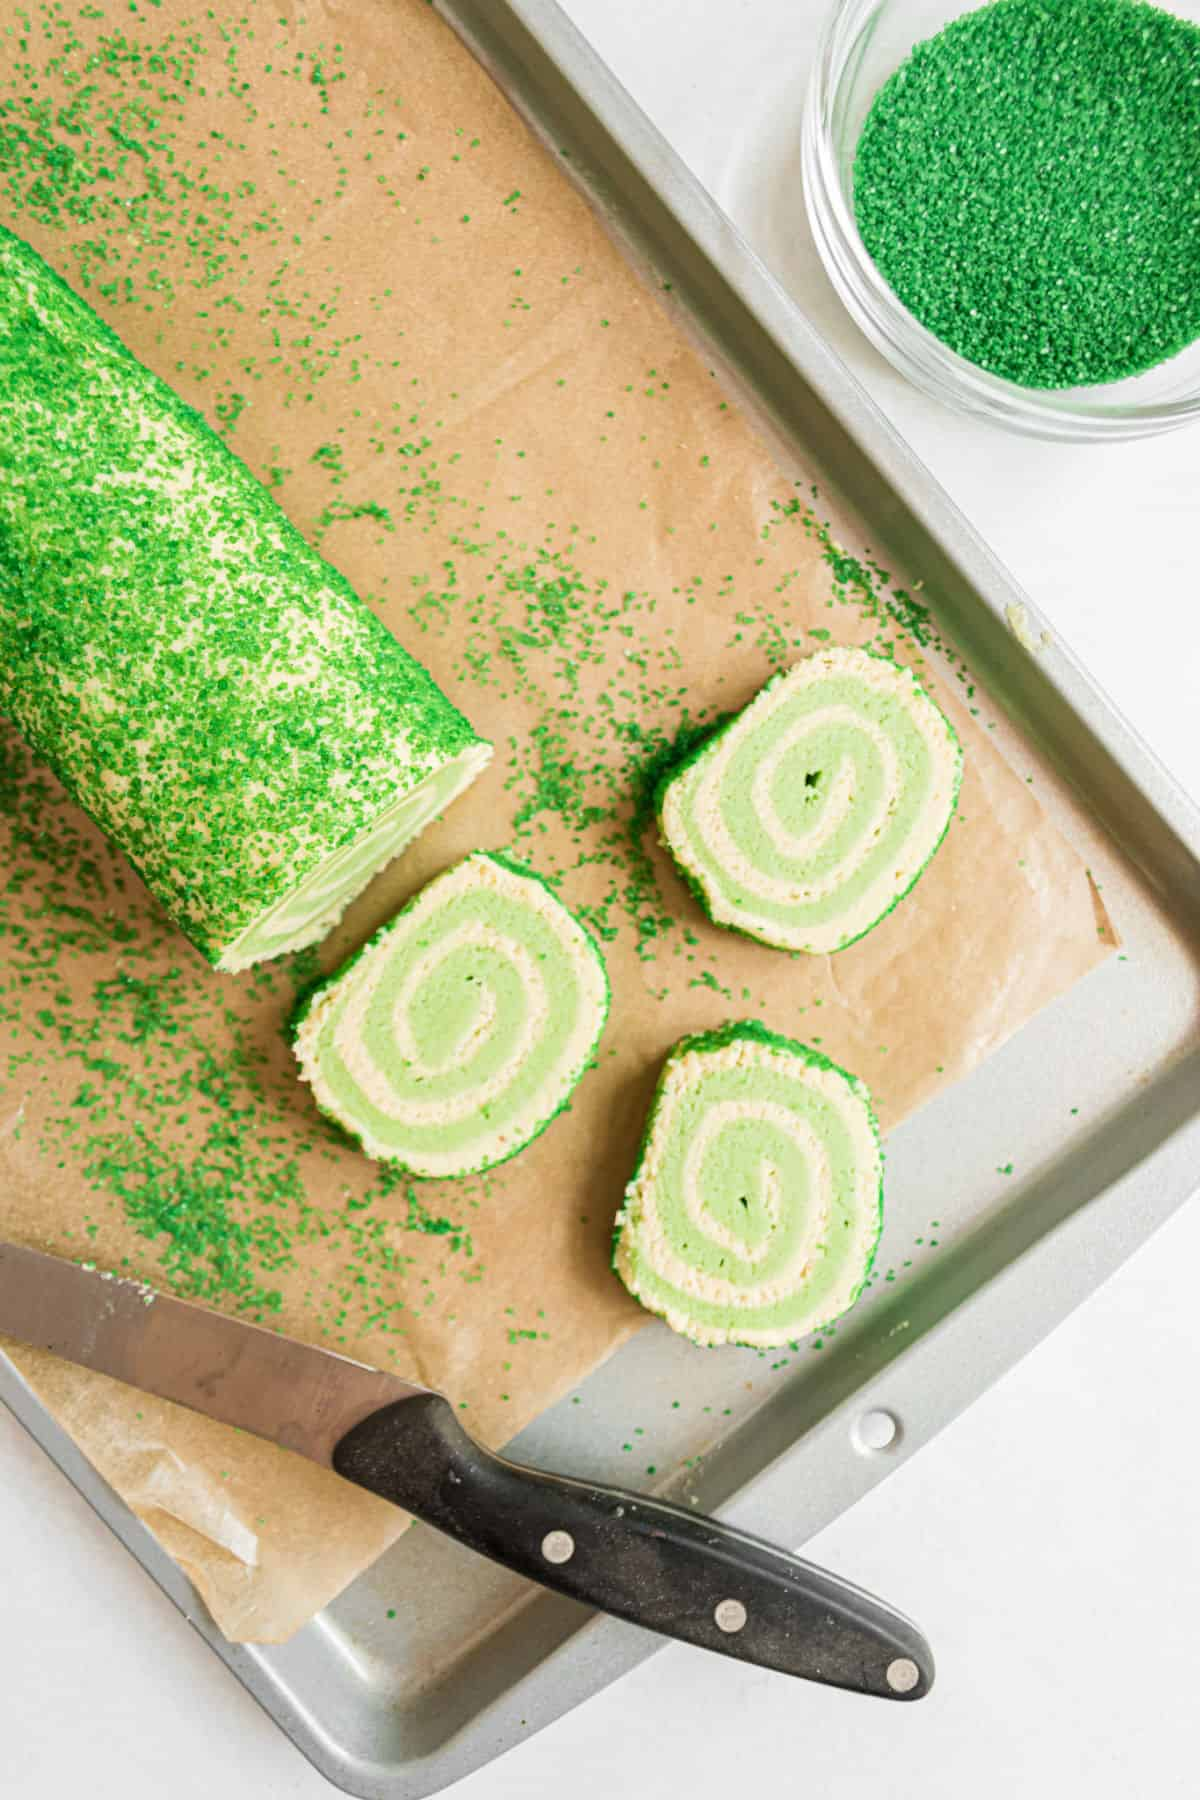 Slices of icebox cookies with lime swirls on parchment paper.